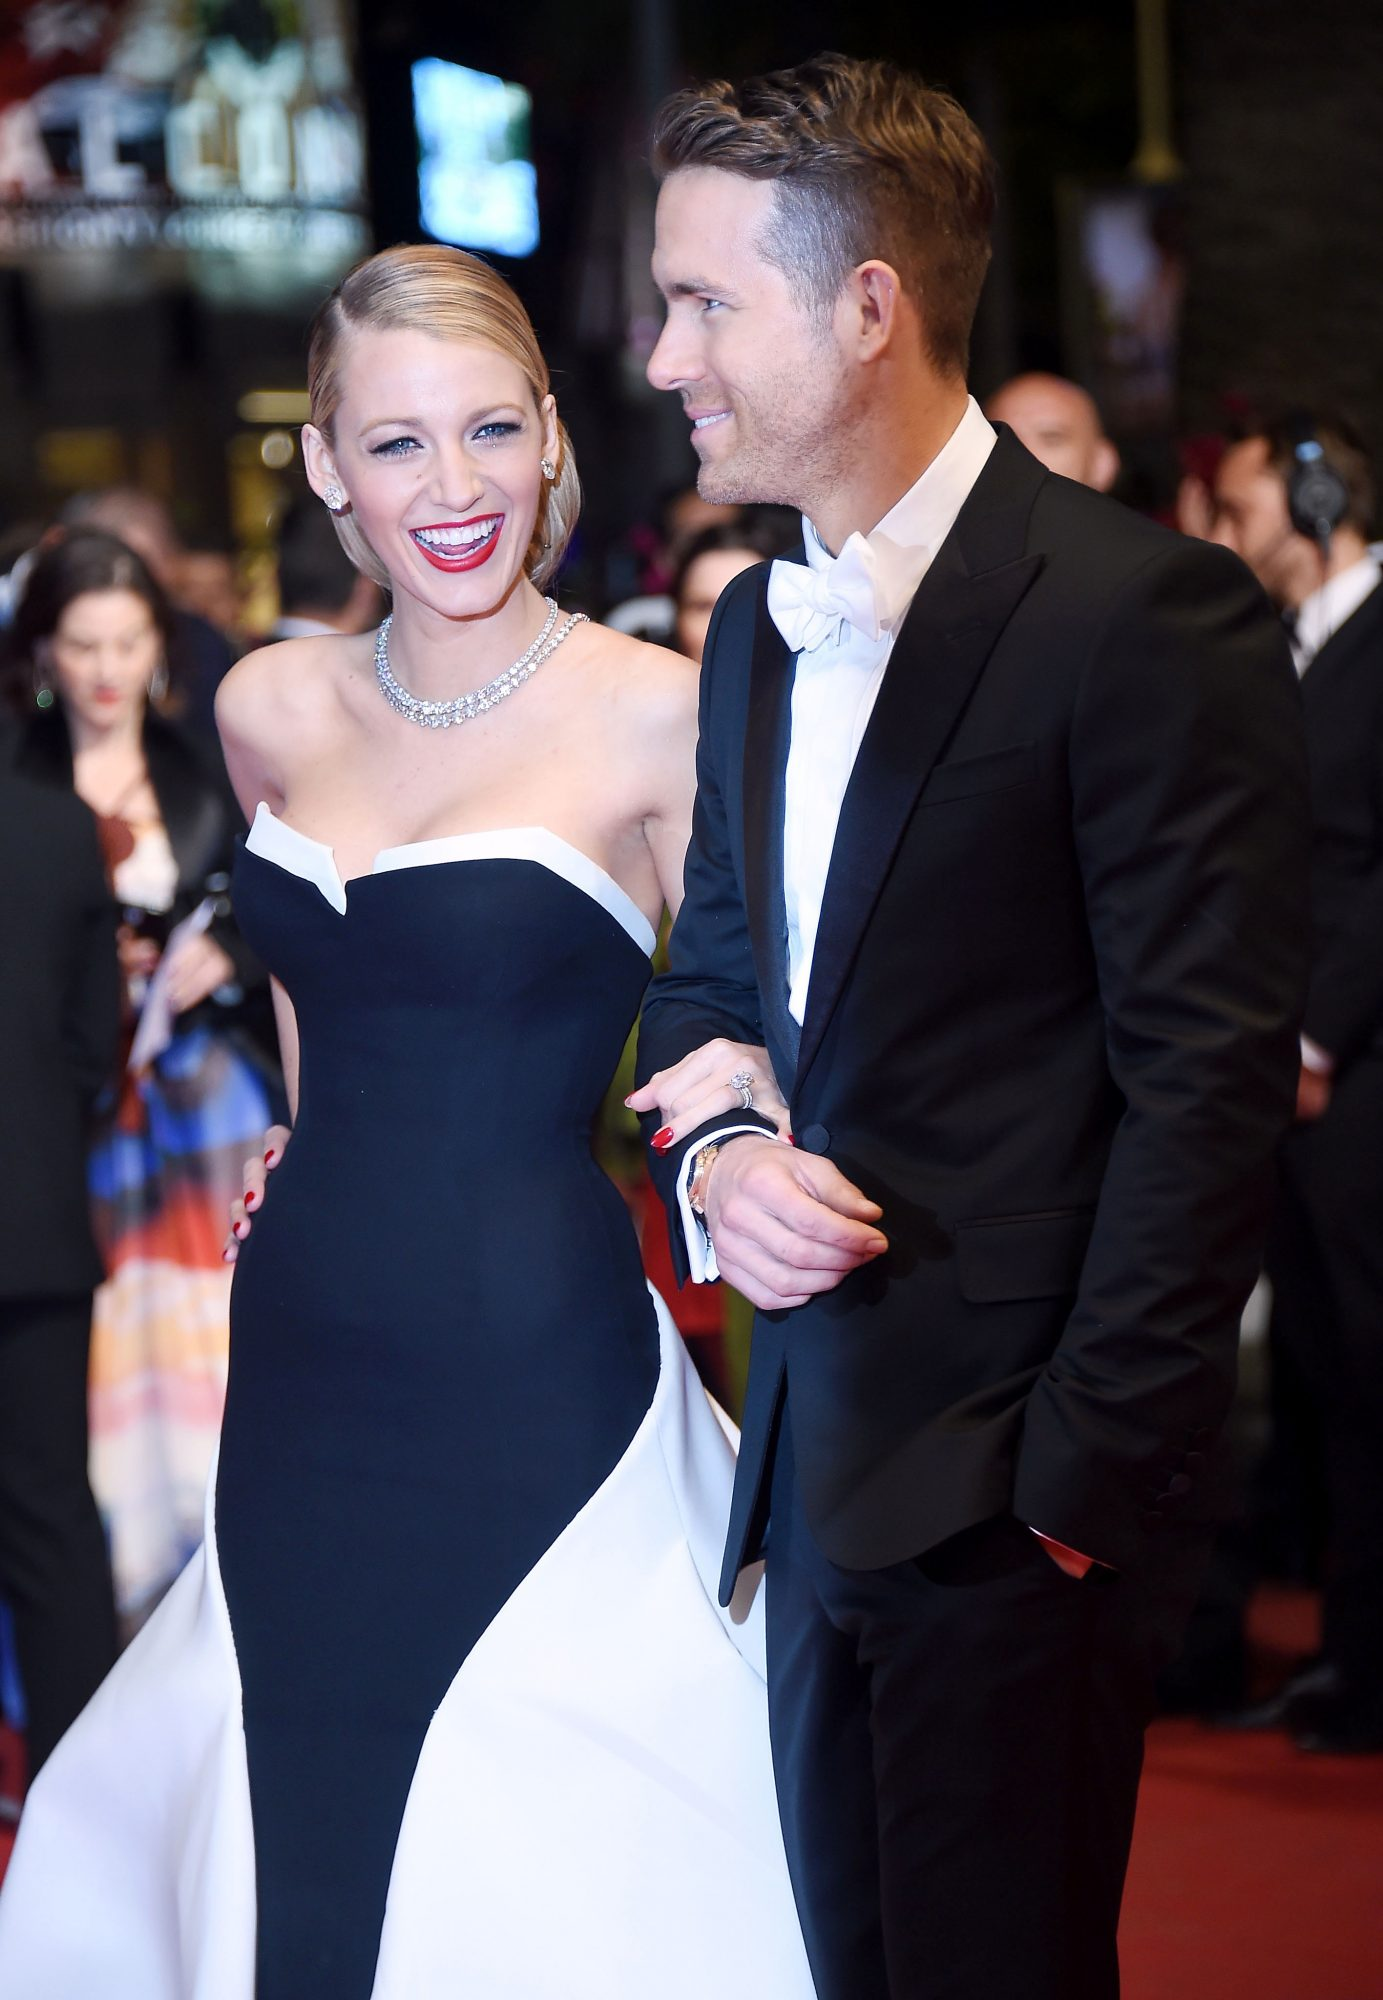 Blake Lively Treats Us to a Shirtless Pic of Ryan Reynolds, Explains Her Fear of Him